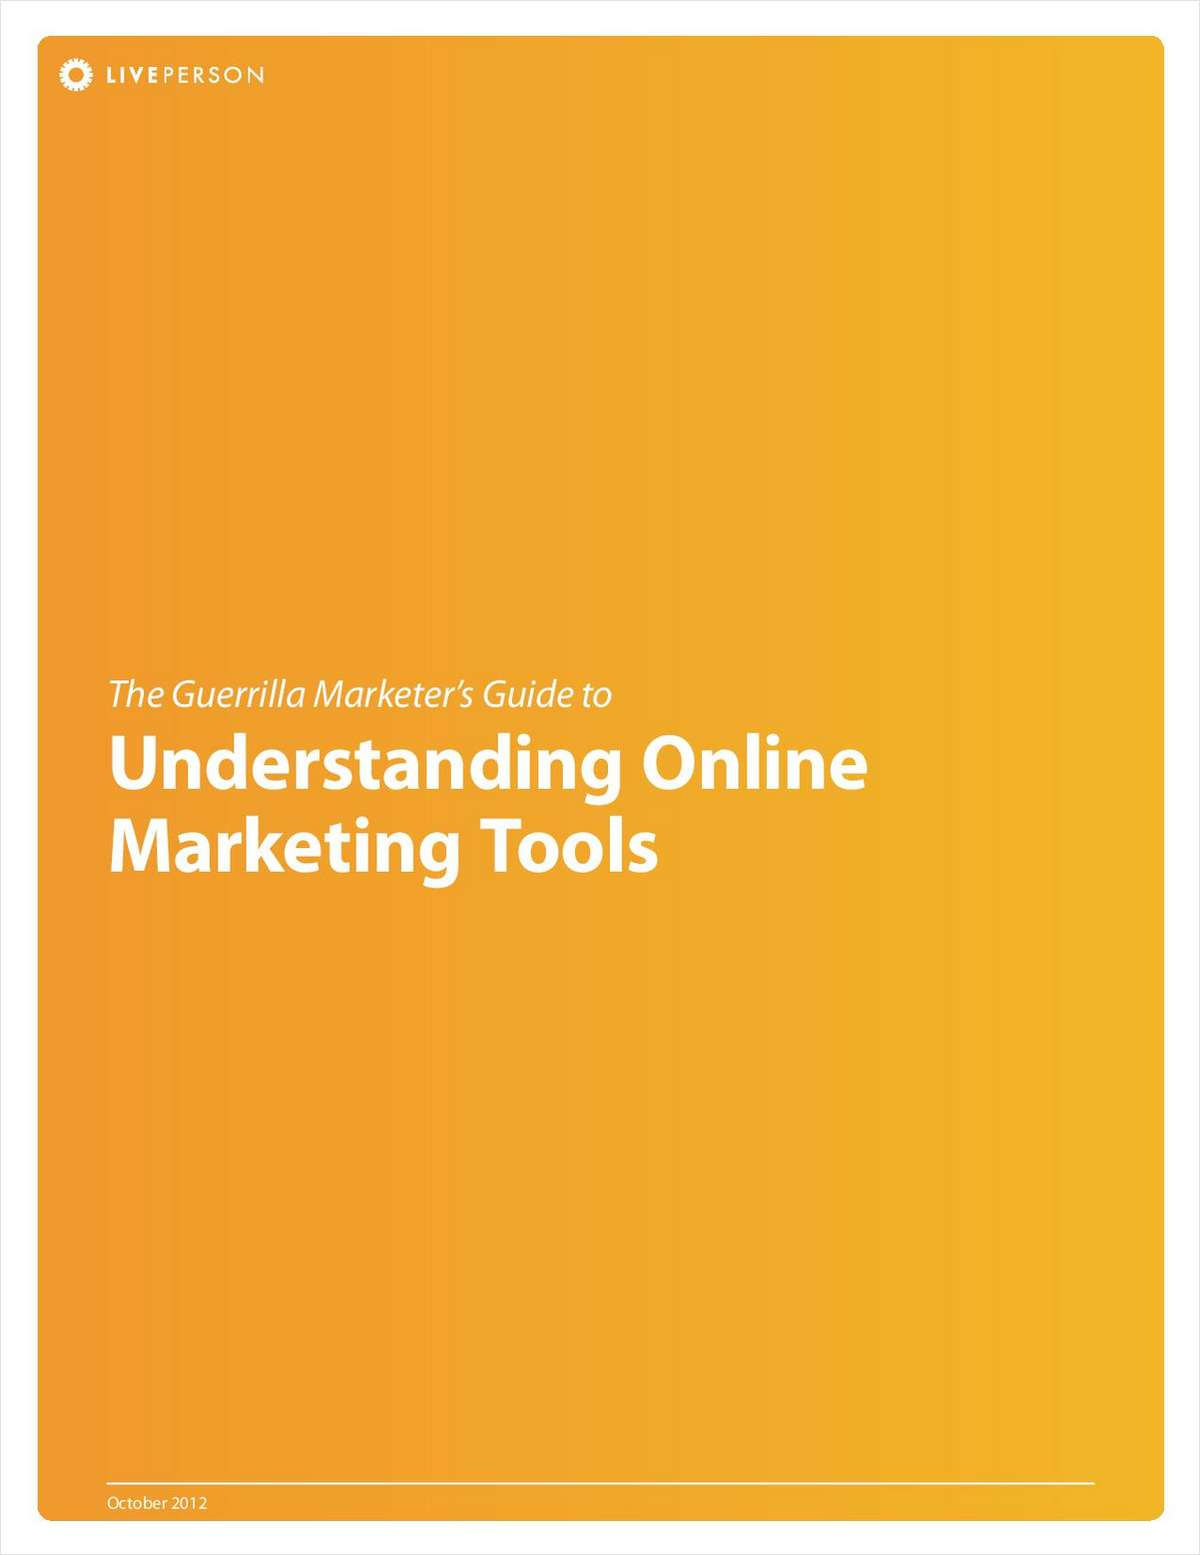 The Guerrilla Marketer's Guide to Understanding Online Marketing Tools